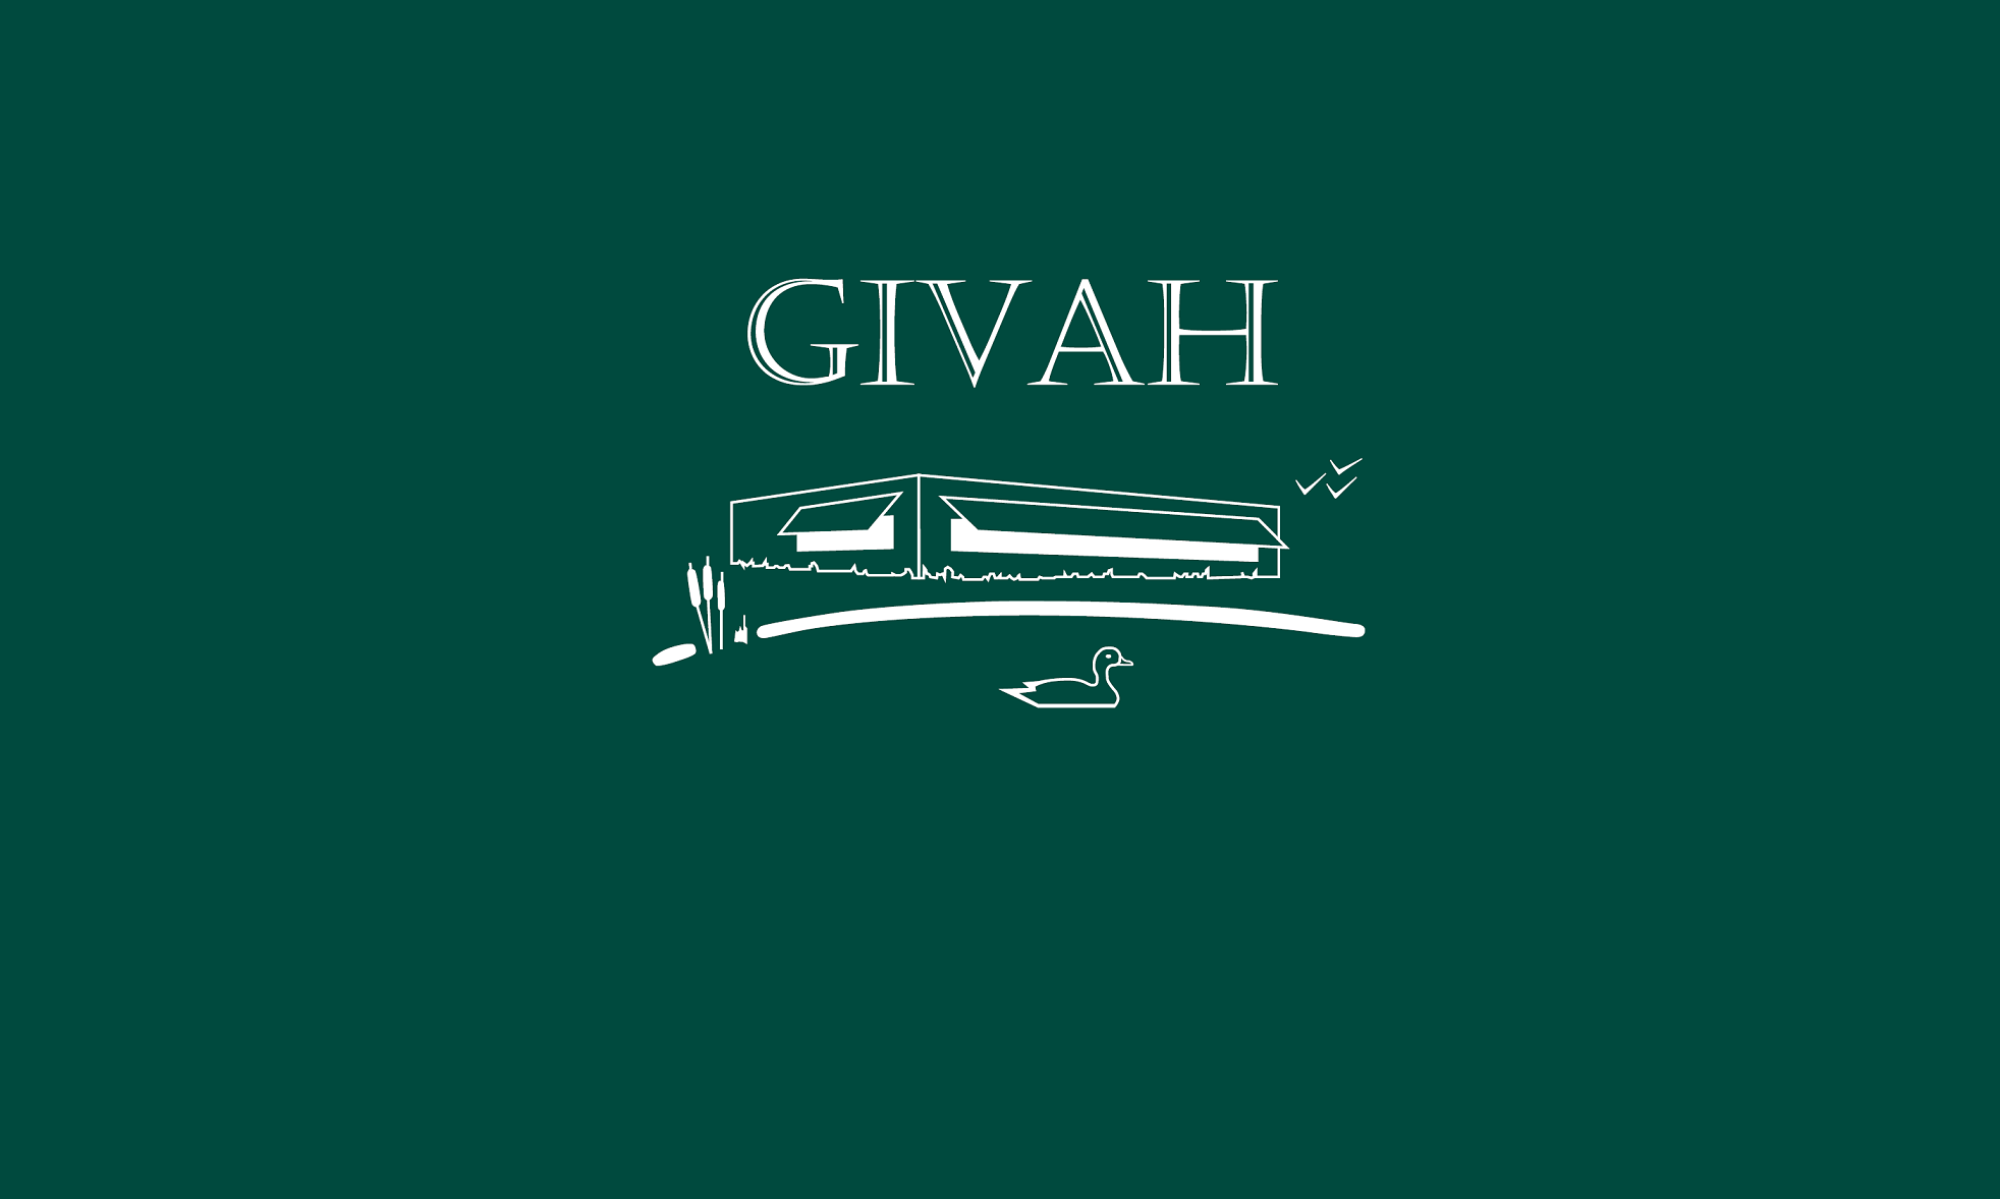 GIVAH